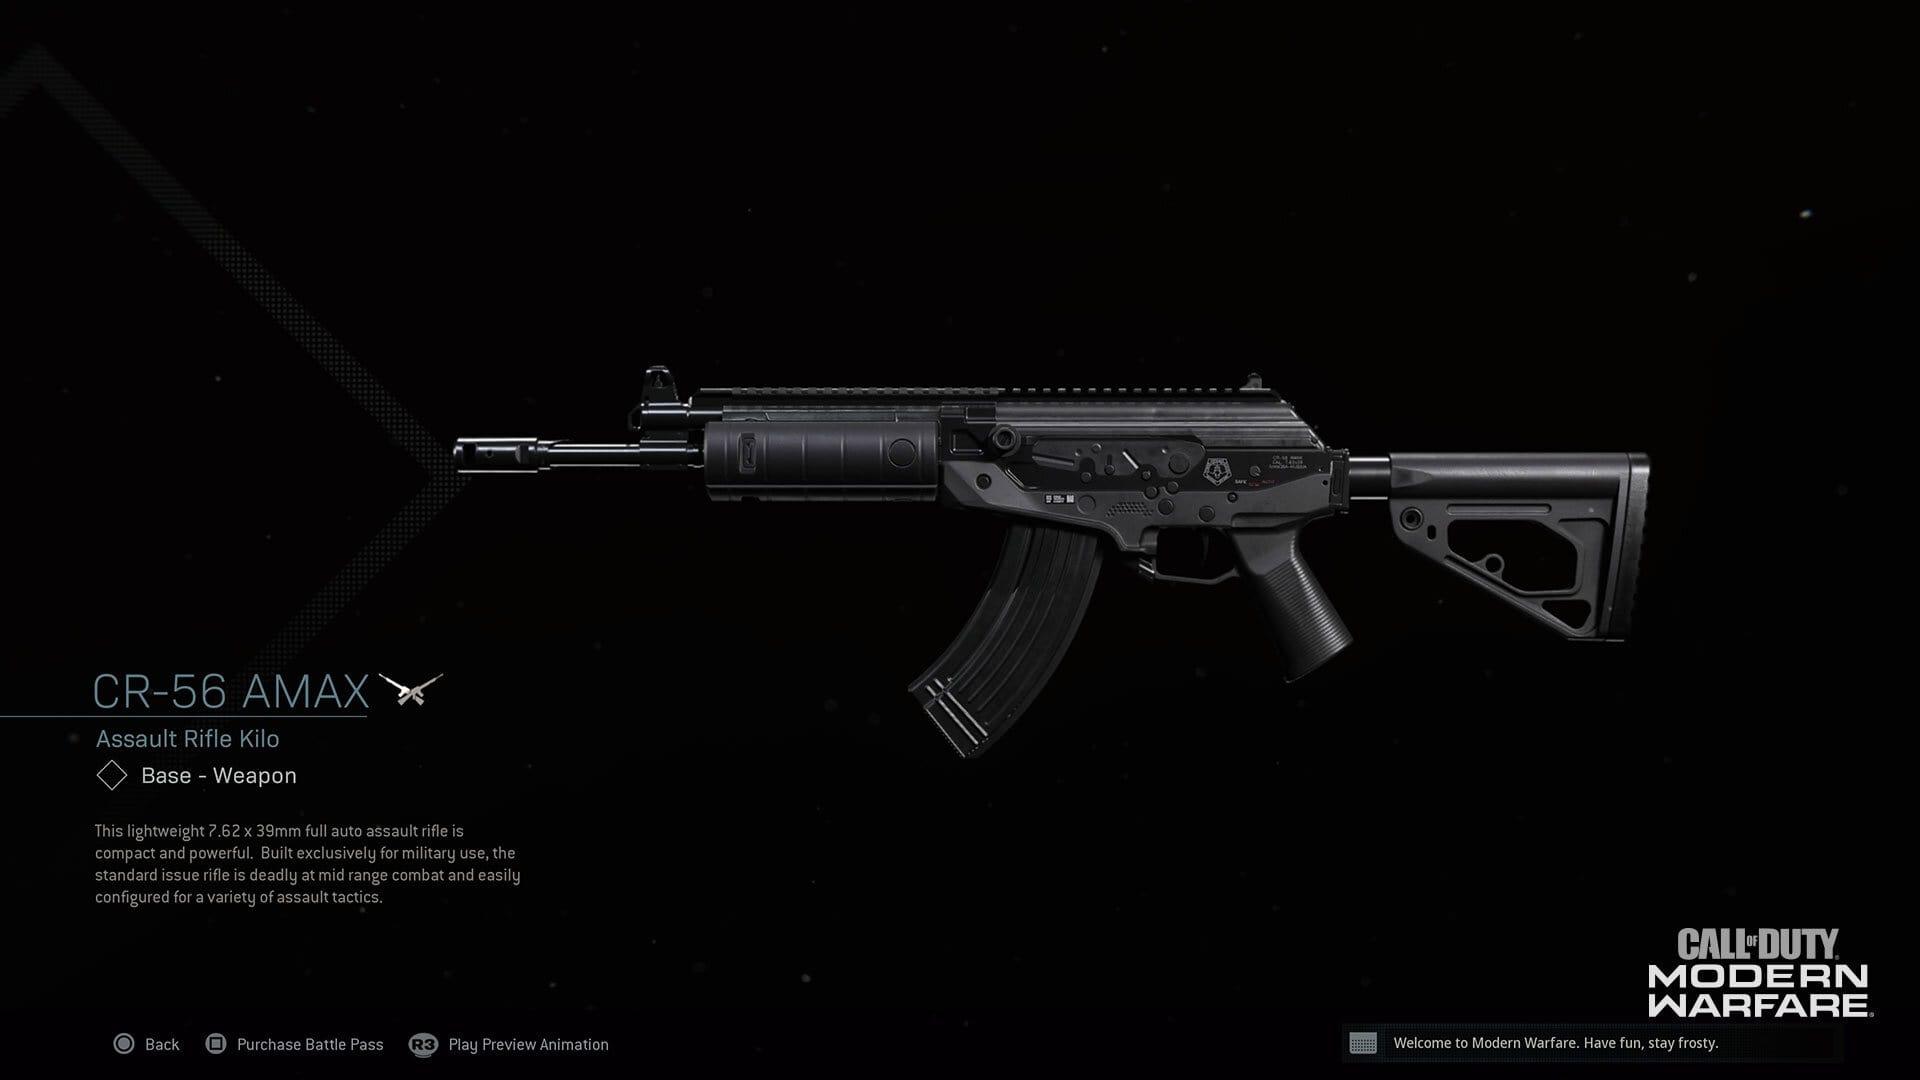 AMAX assault rifle